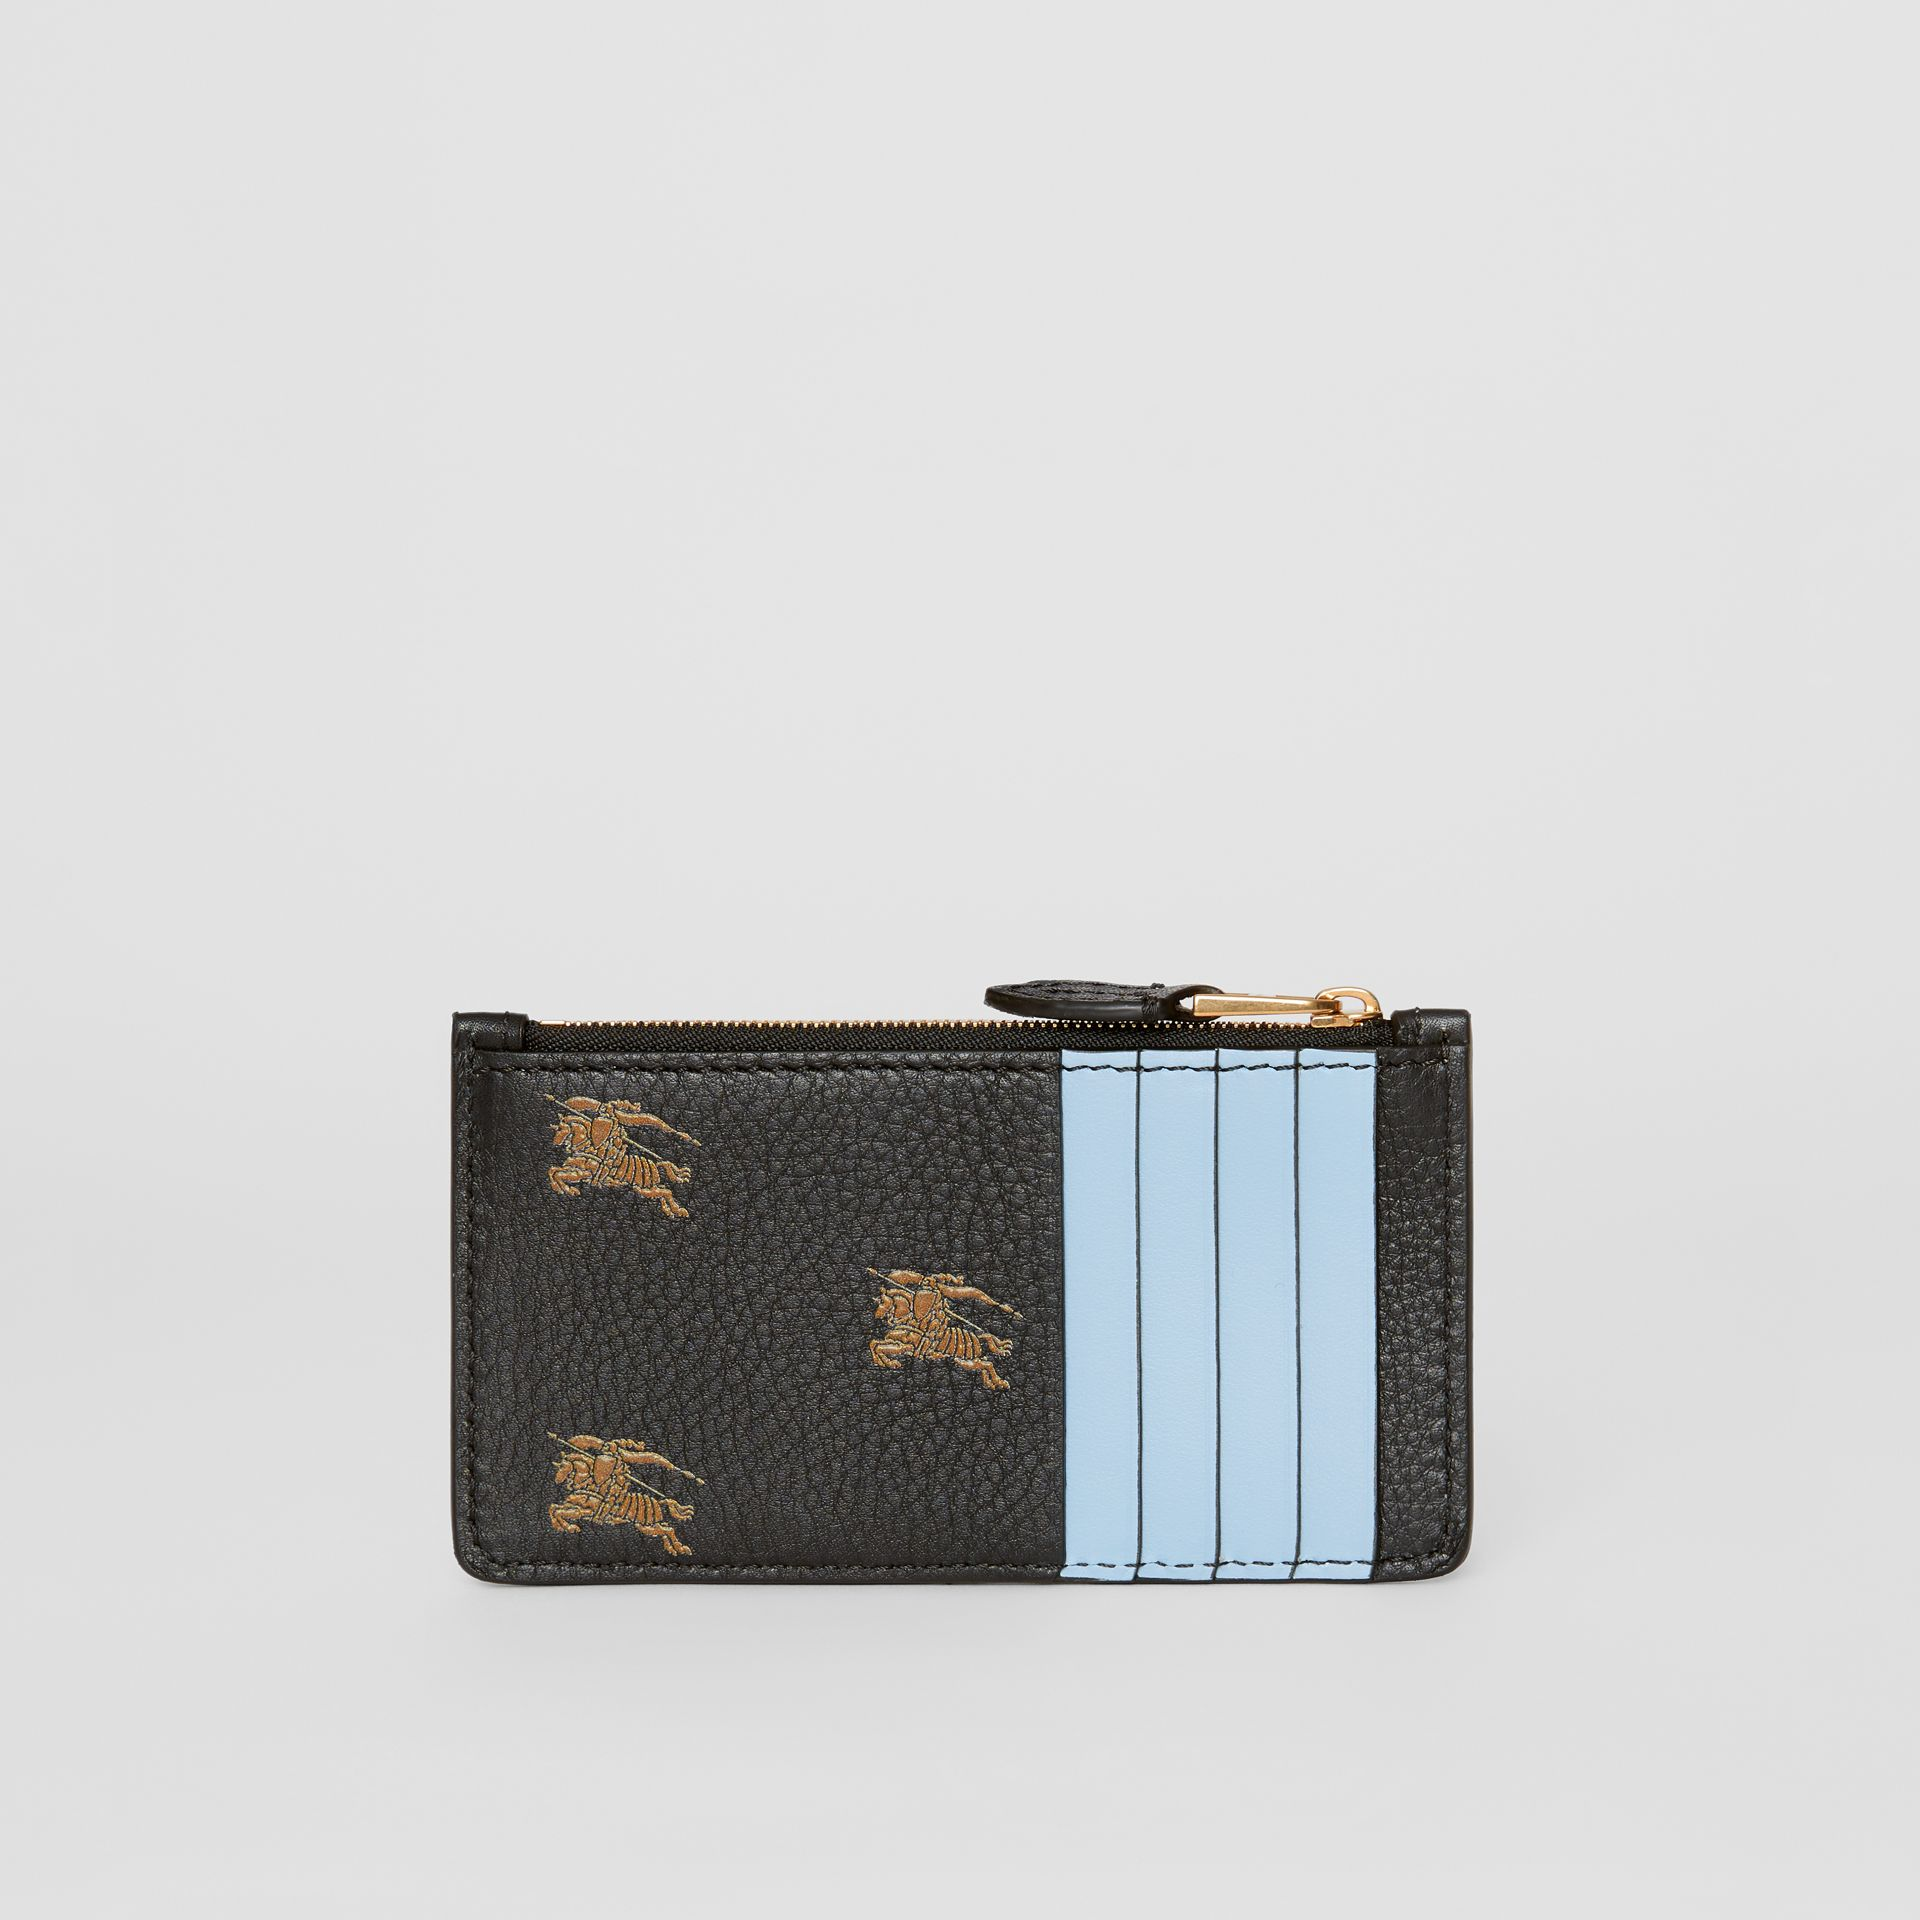 Equestrian Knight Leather Zip Card Case in Black - Women | Burberry - gallery image 3